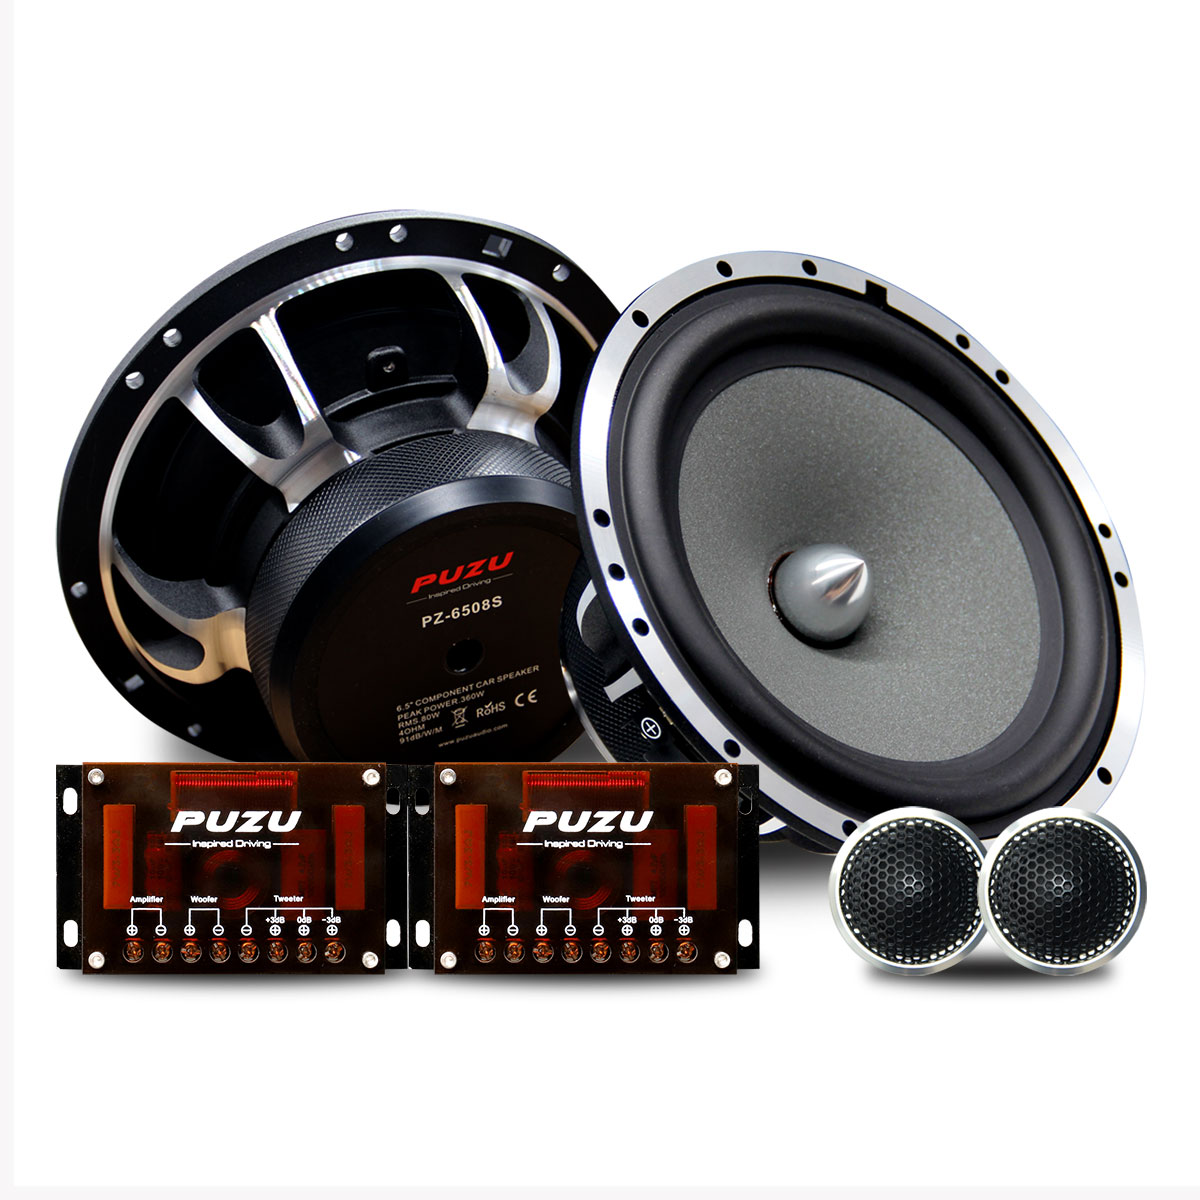 PUZU PZ-6508S 2-way Component car speakers